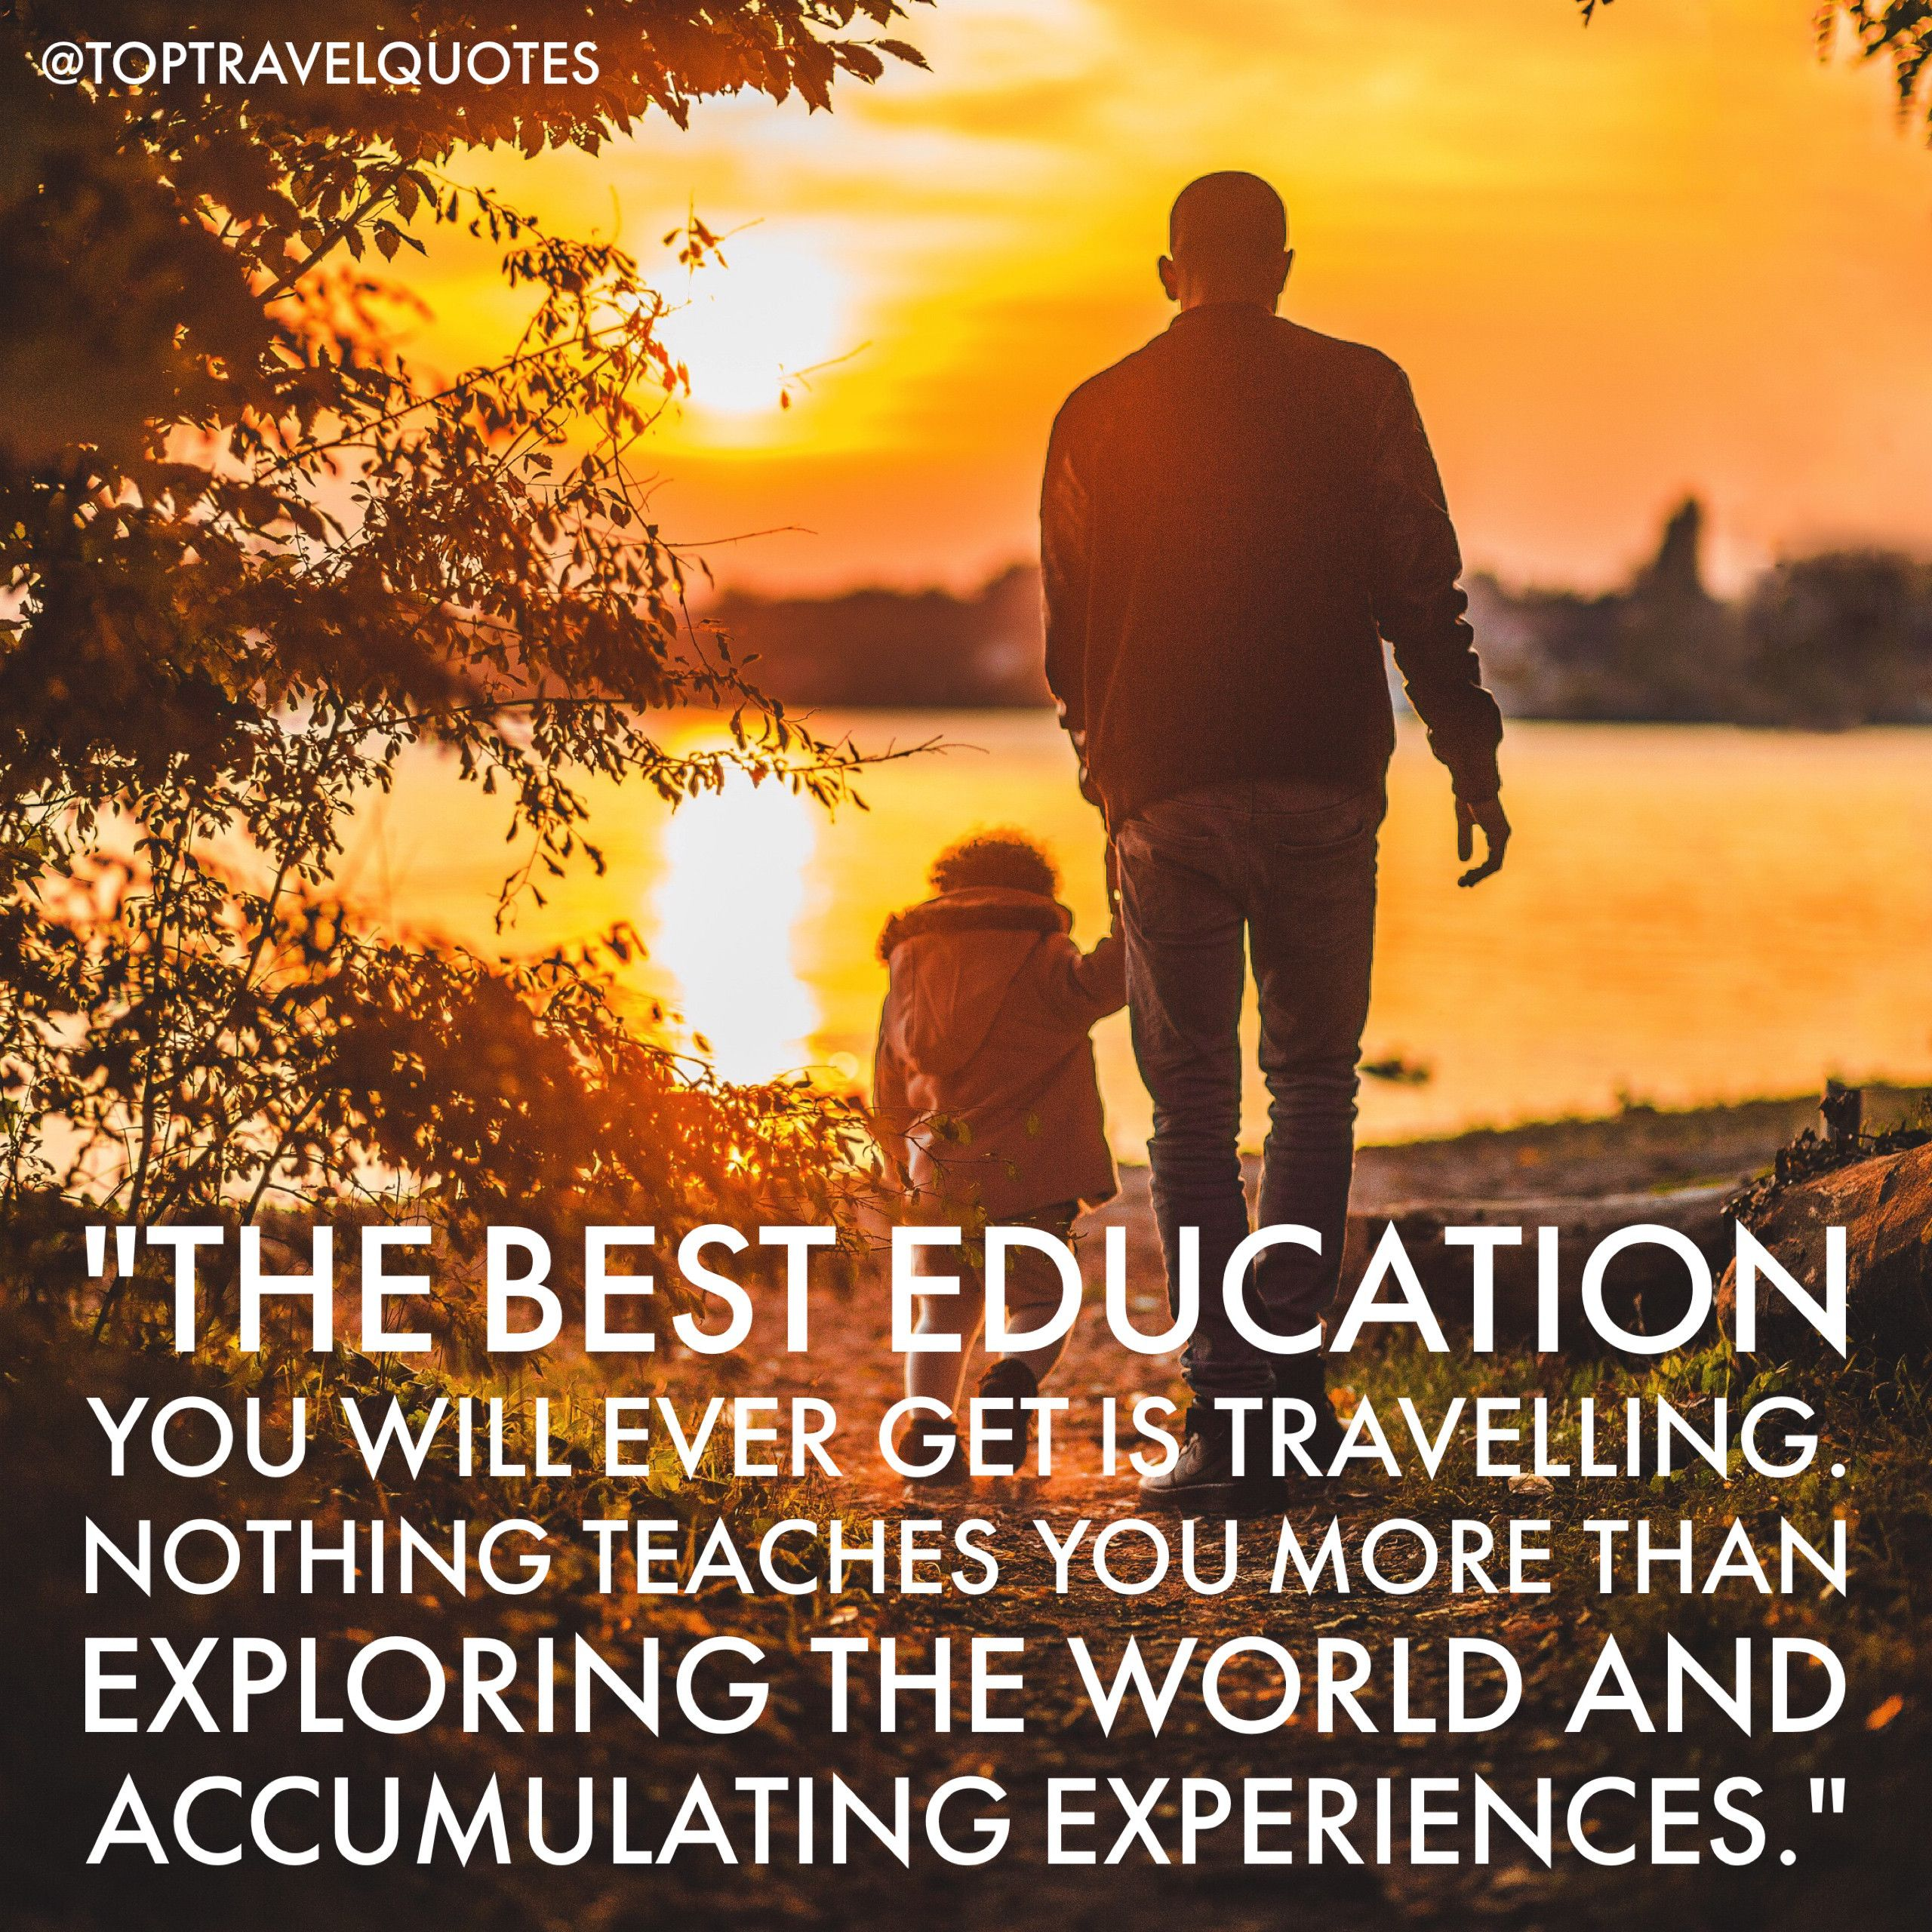 """Travel Life Insurance Quotes: """"The Best Education You Will Ever Get Is Travelling"""